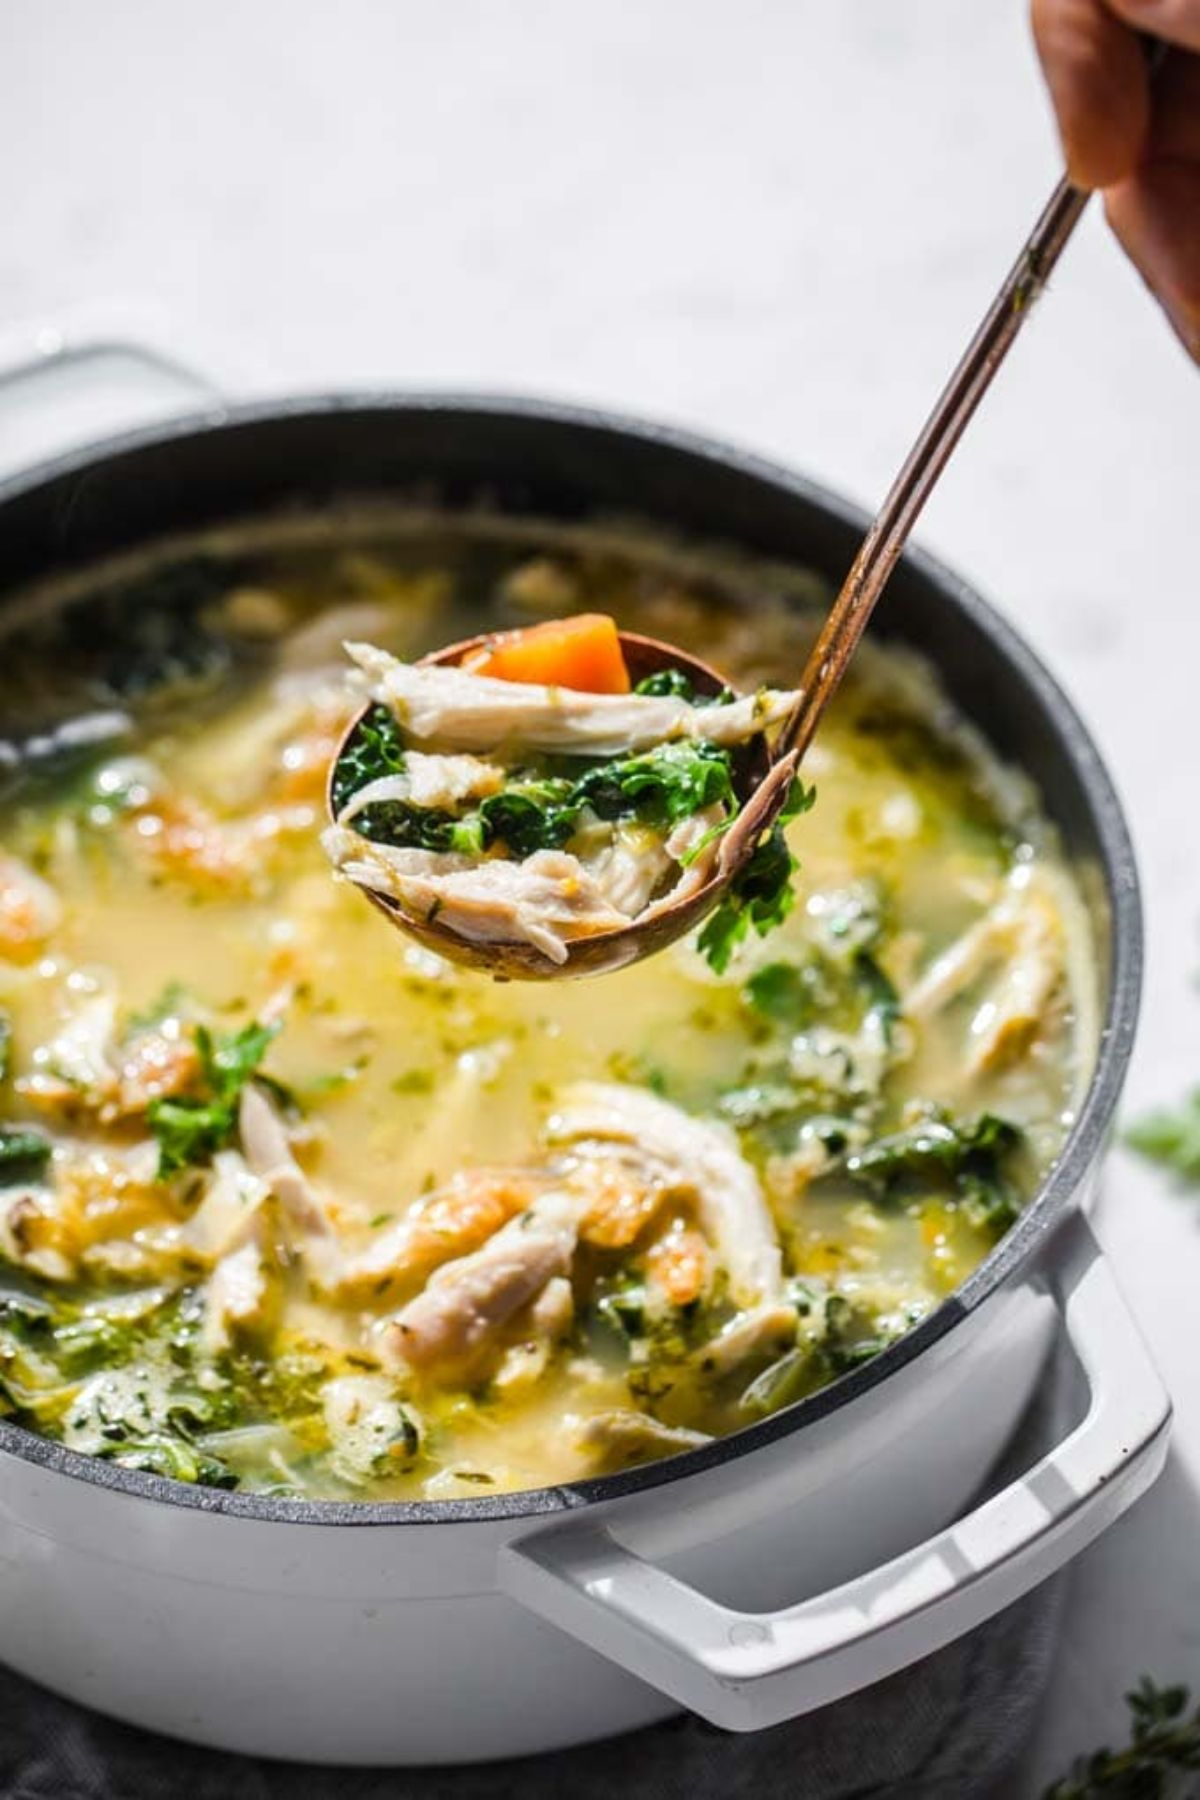 a cast iron casserole dish filled with roast chiken soup. A ladel is pulling a spoonful of soup out of the bowl